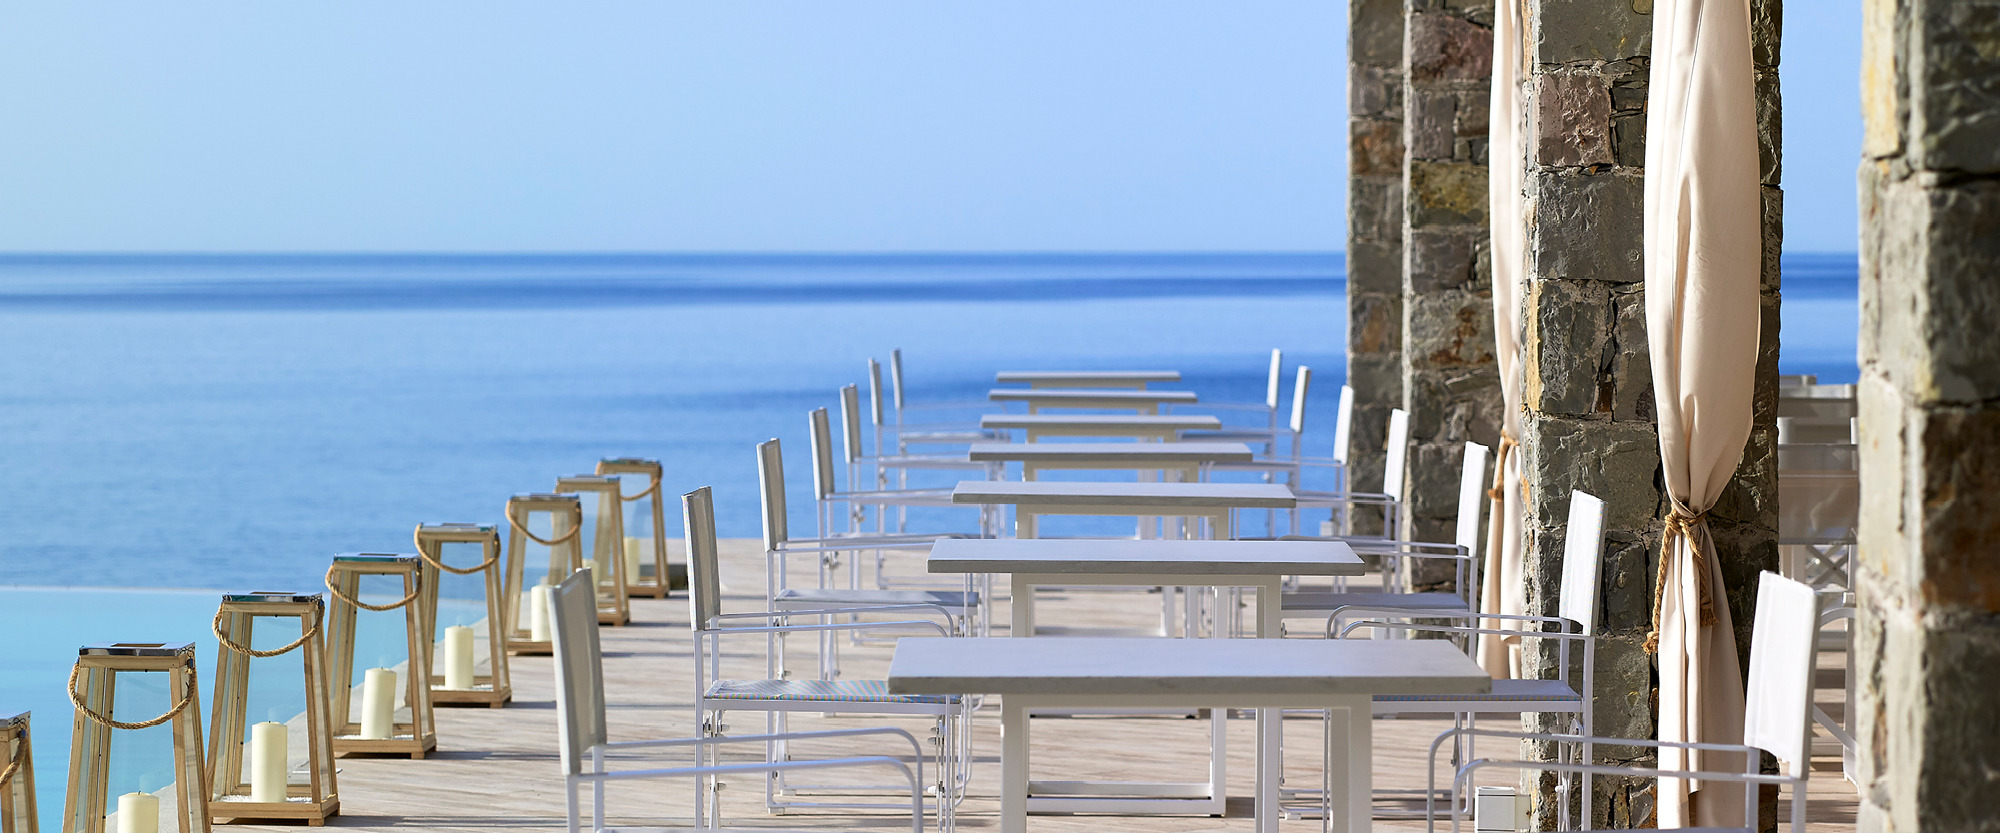 Pool_Bar_swimming_pool_experience_summer_summertime_wood_luxury_endless_blue_view_horizon_Artemis_Deluxe_Rooms_Milos_island_Cyclades